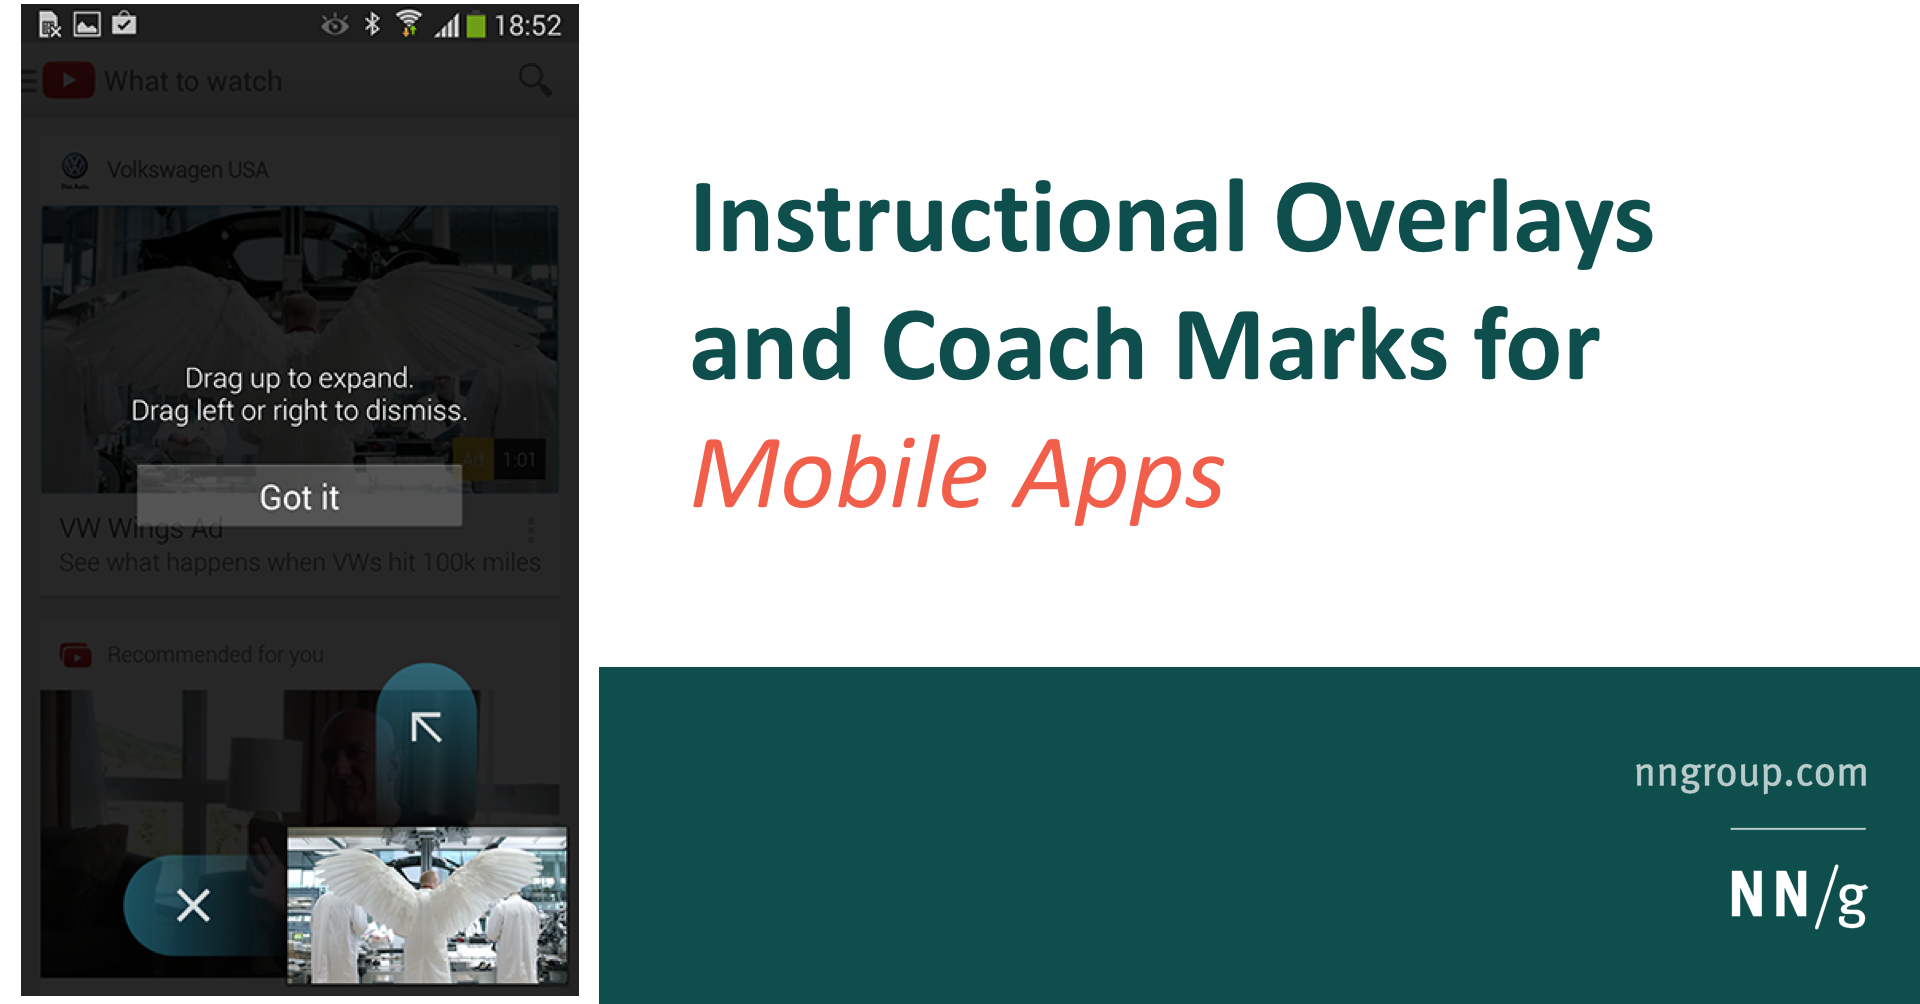 Instructional Overlays and Coach Marks for Mobile Apps